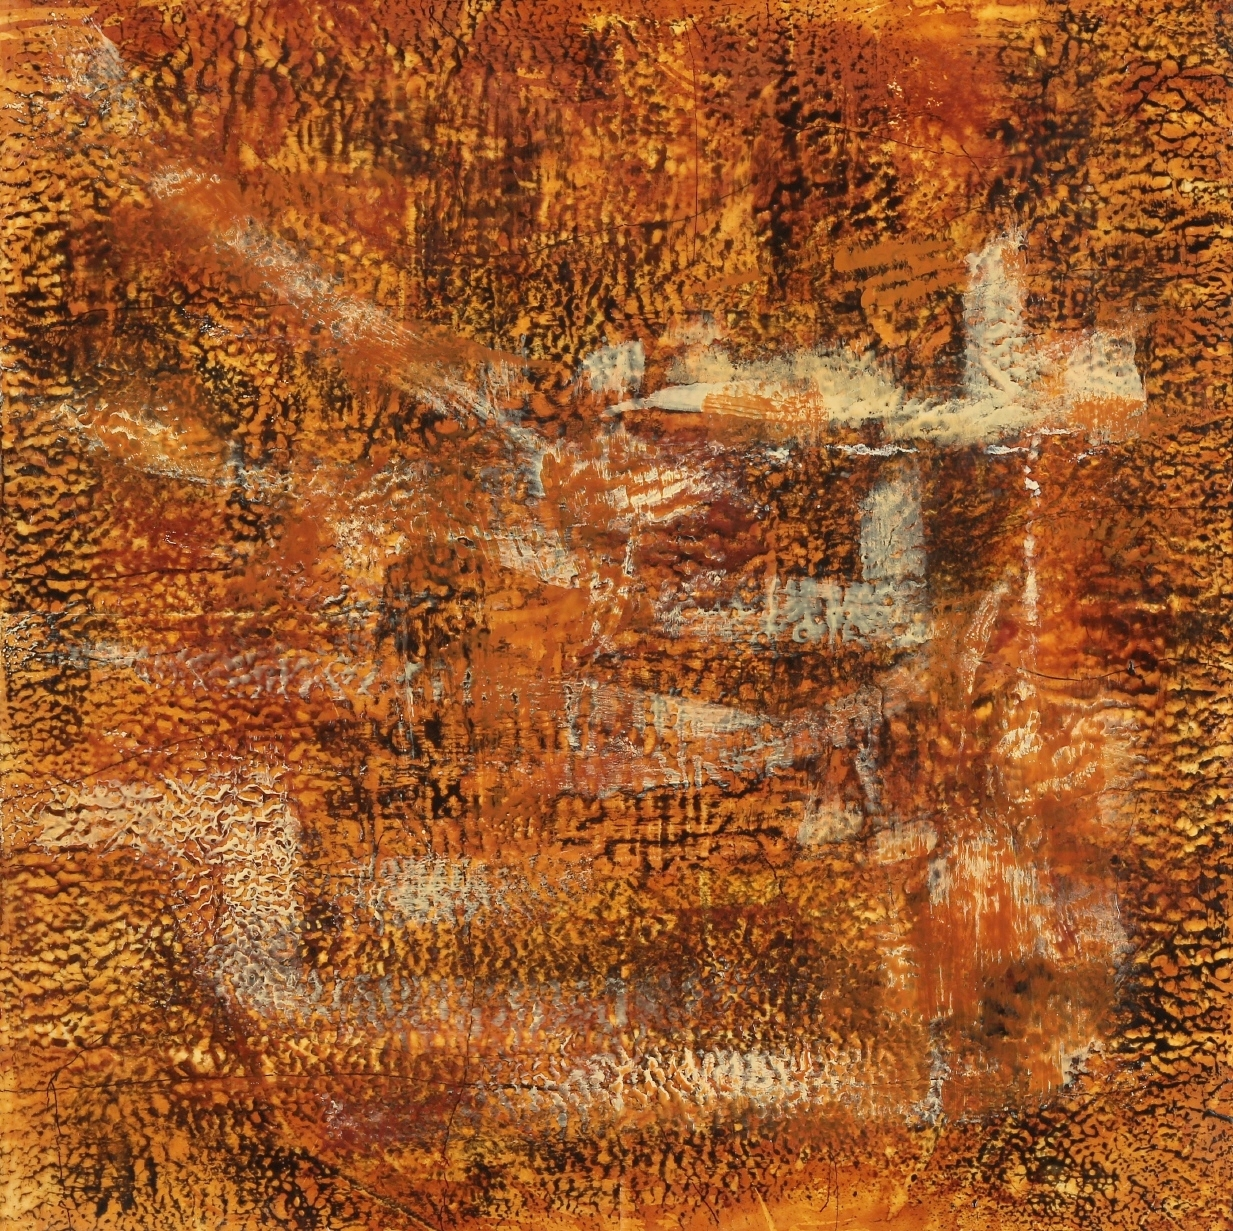 Rust #51, 2014, Rust, encaustic, India ink, oil pastel on paper on panel, 18 x 18""